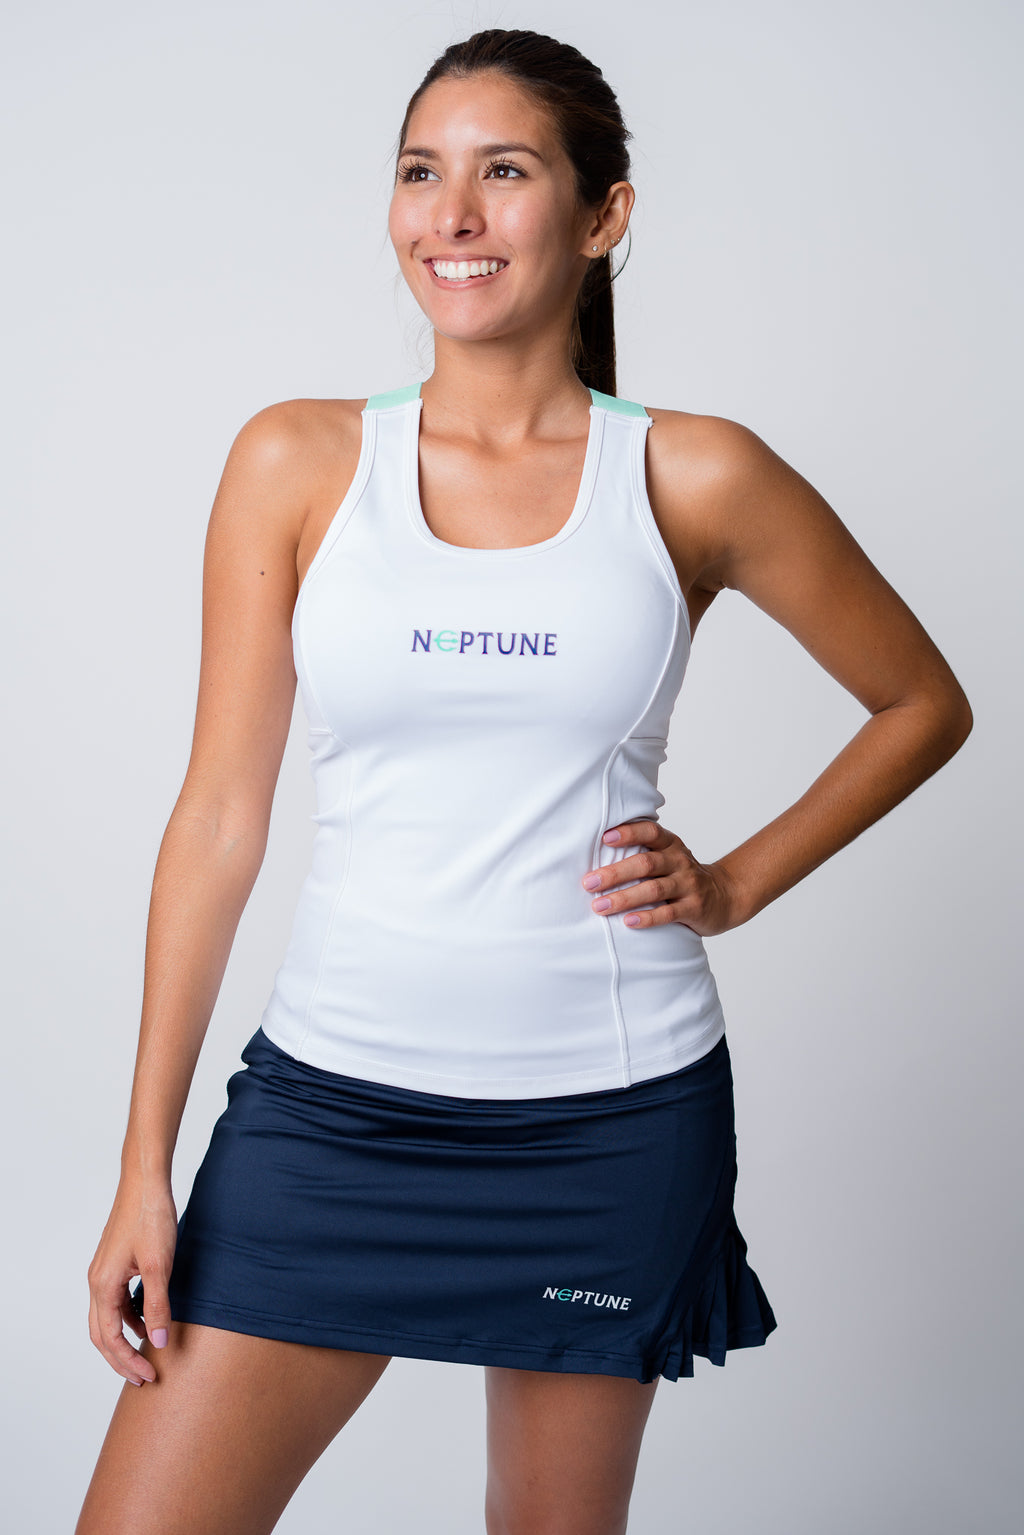 Neptune athletics white tank top with neptune logo on front chest